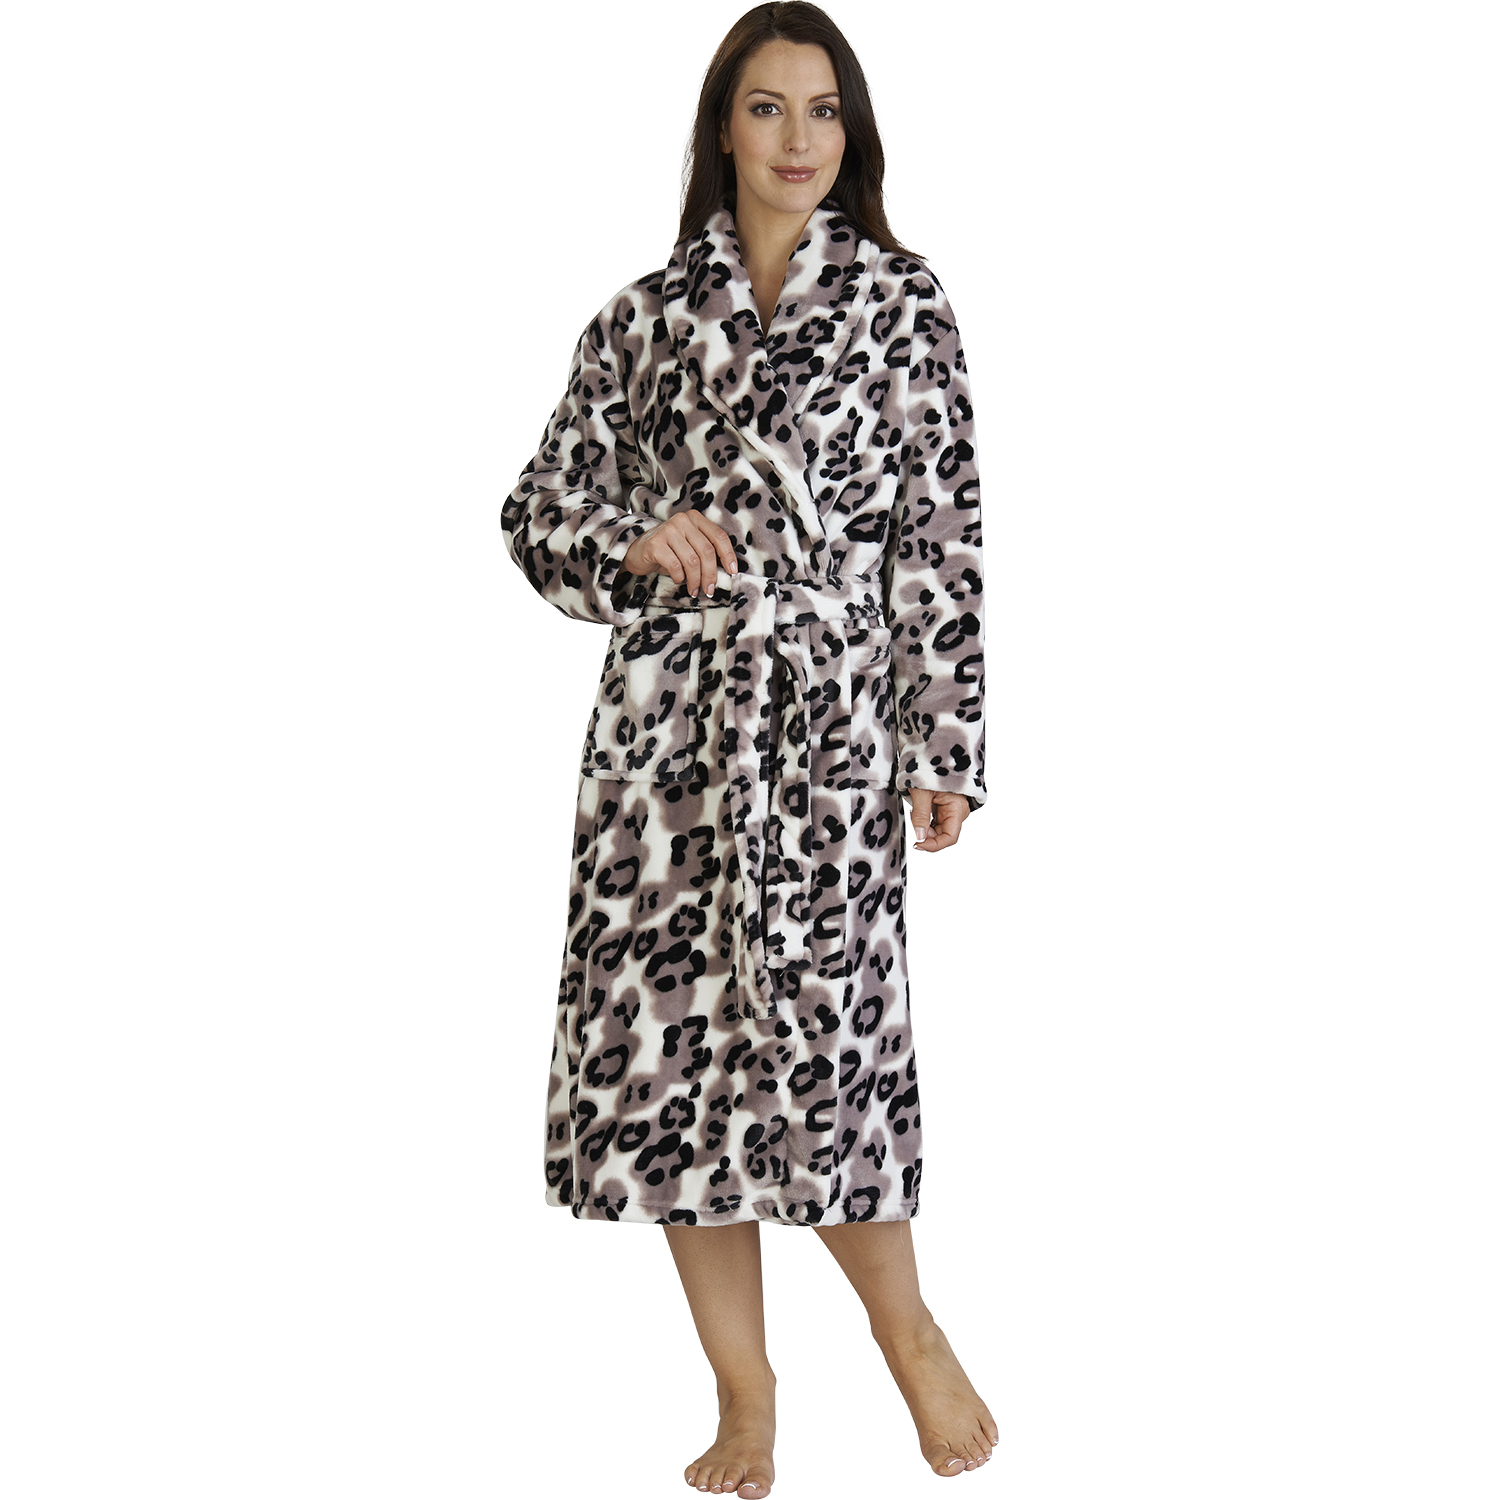 c9a7ff2ddf Womens Leopard Print Bath Robe Soft Luxury Mink Fleece Dressing Gown ...